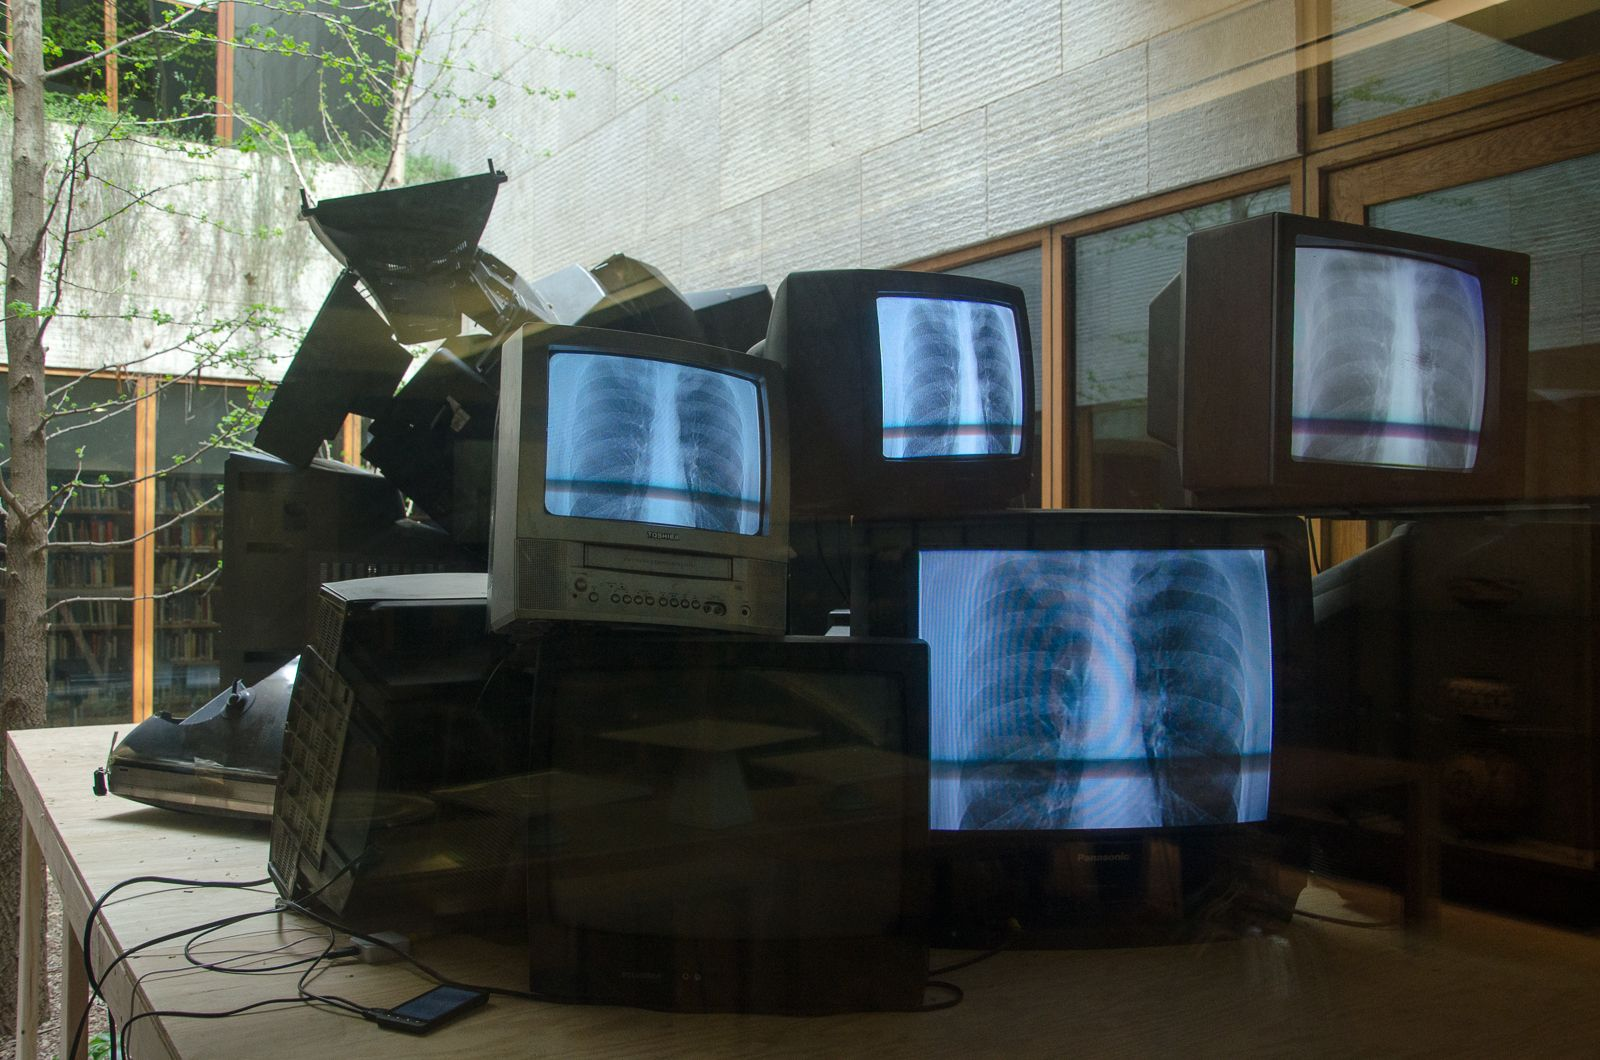 WILMER WILSON IV  a long pane beat in  2017, cords, cellphones, CRT televisions with X-ray photograph, dimensions variable. Installation view: The Barnes Foundation